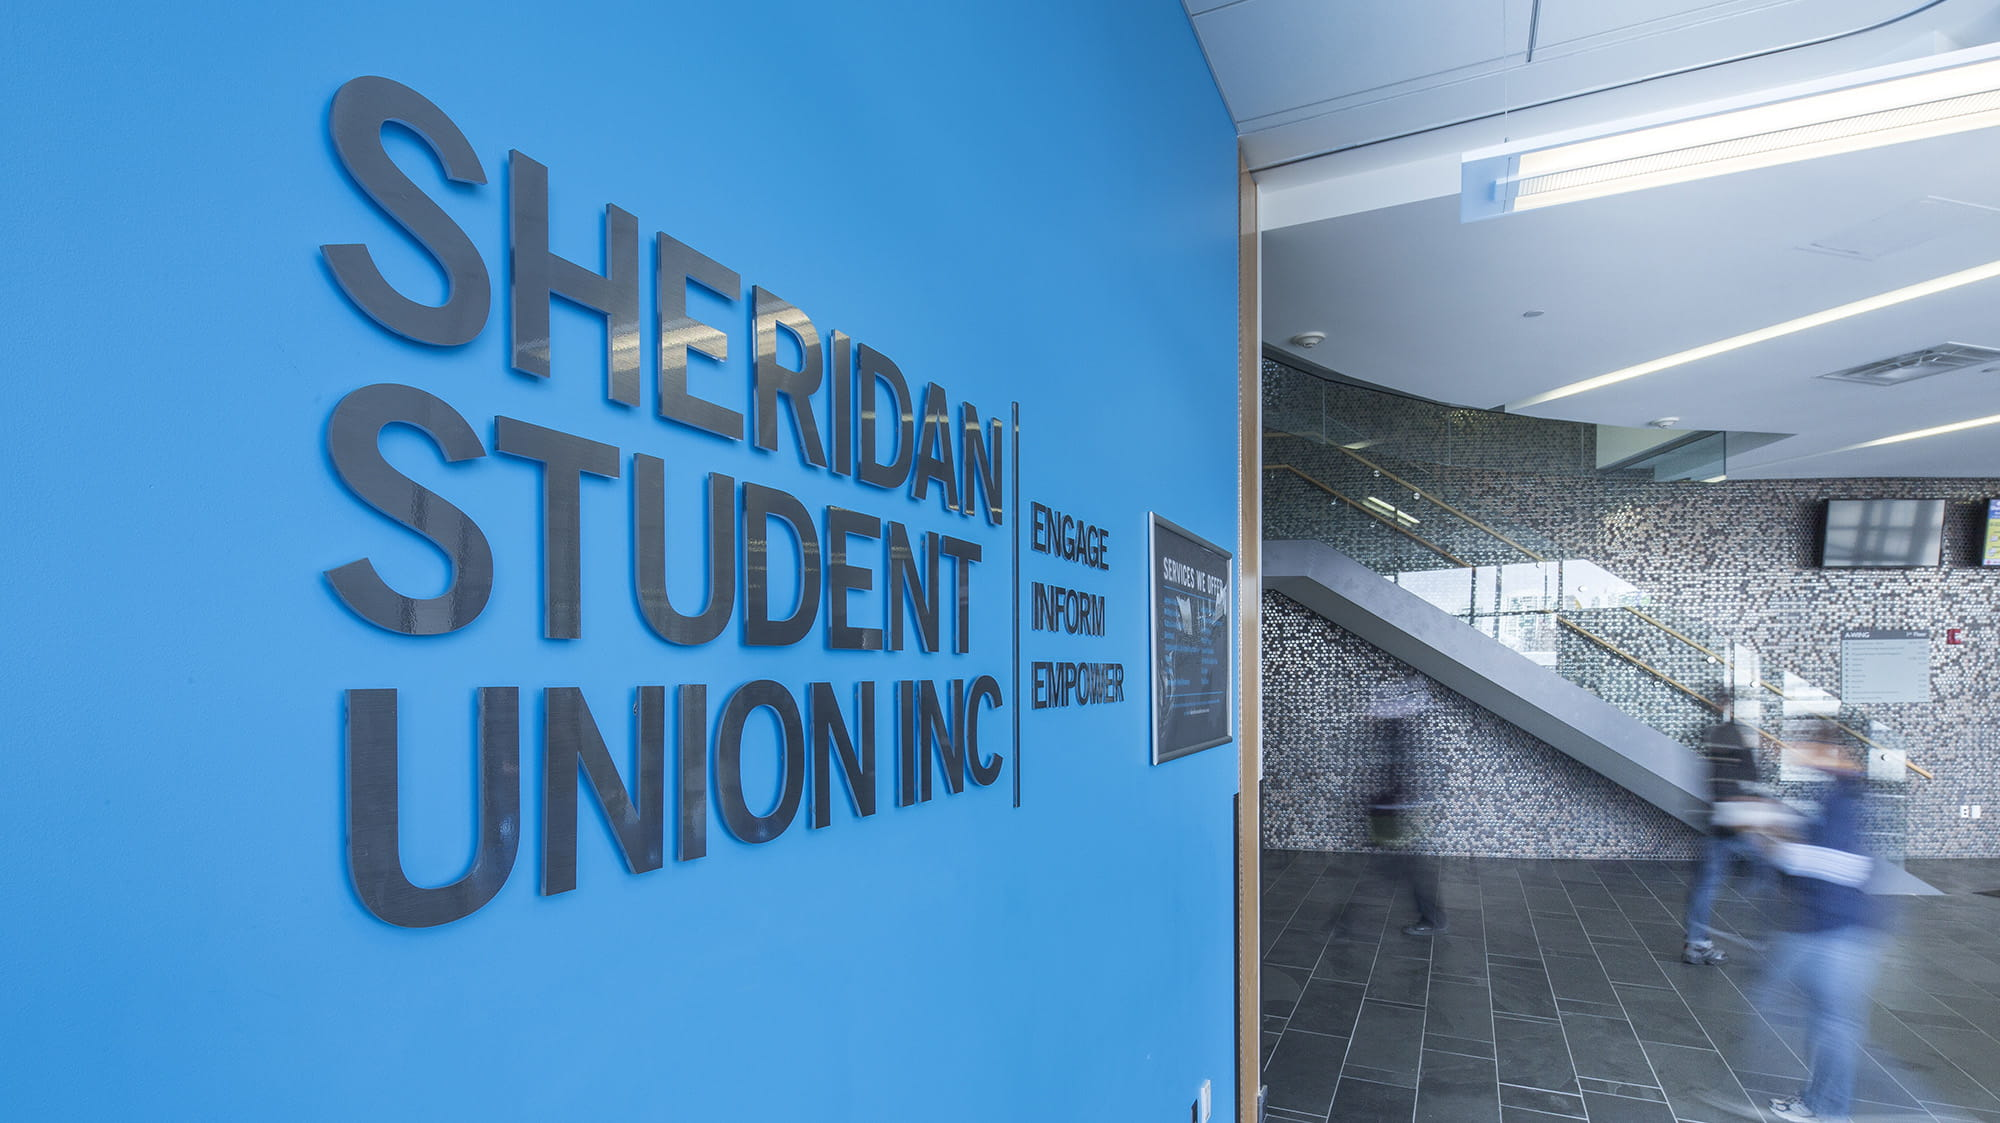 A large blue Sheridan Student Union sign in a hallway